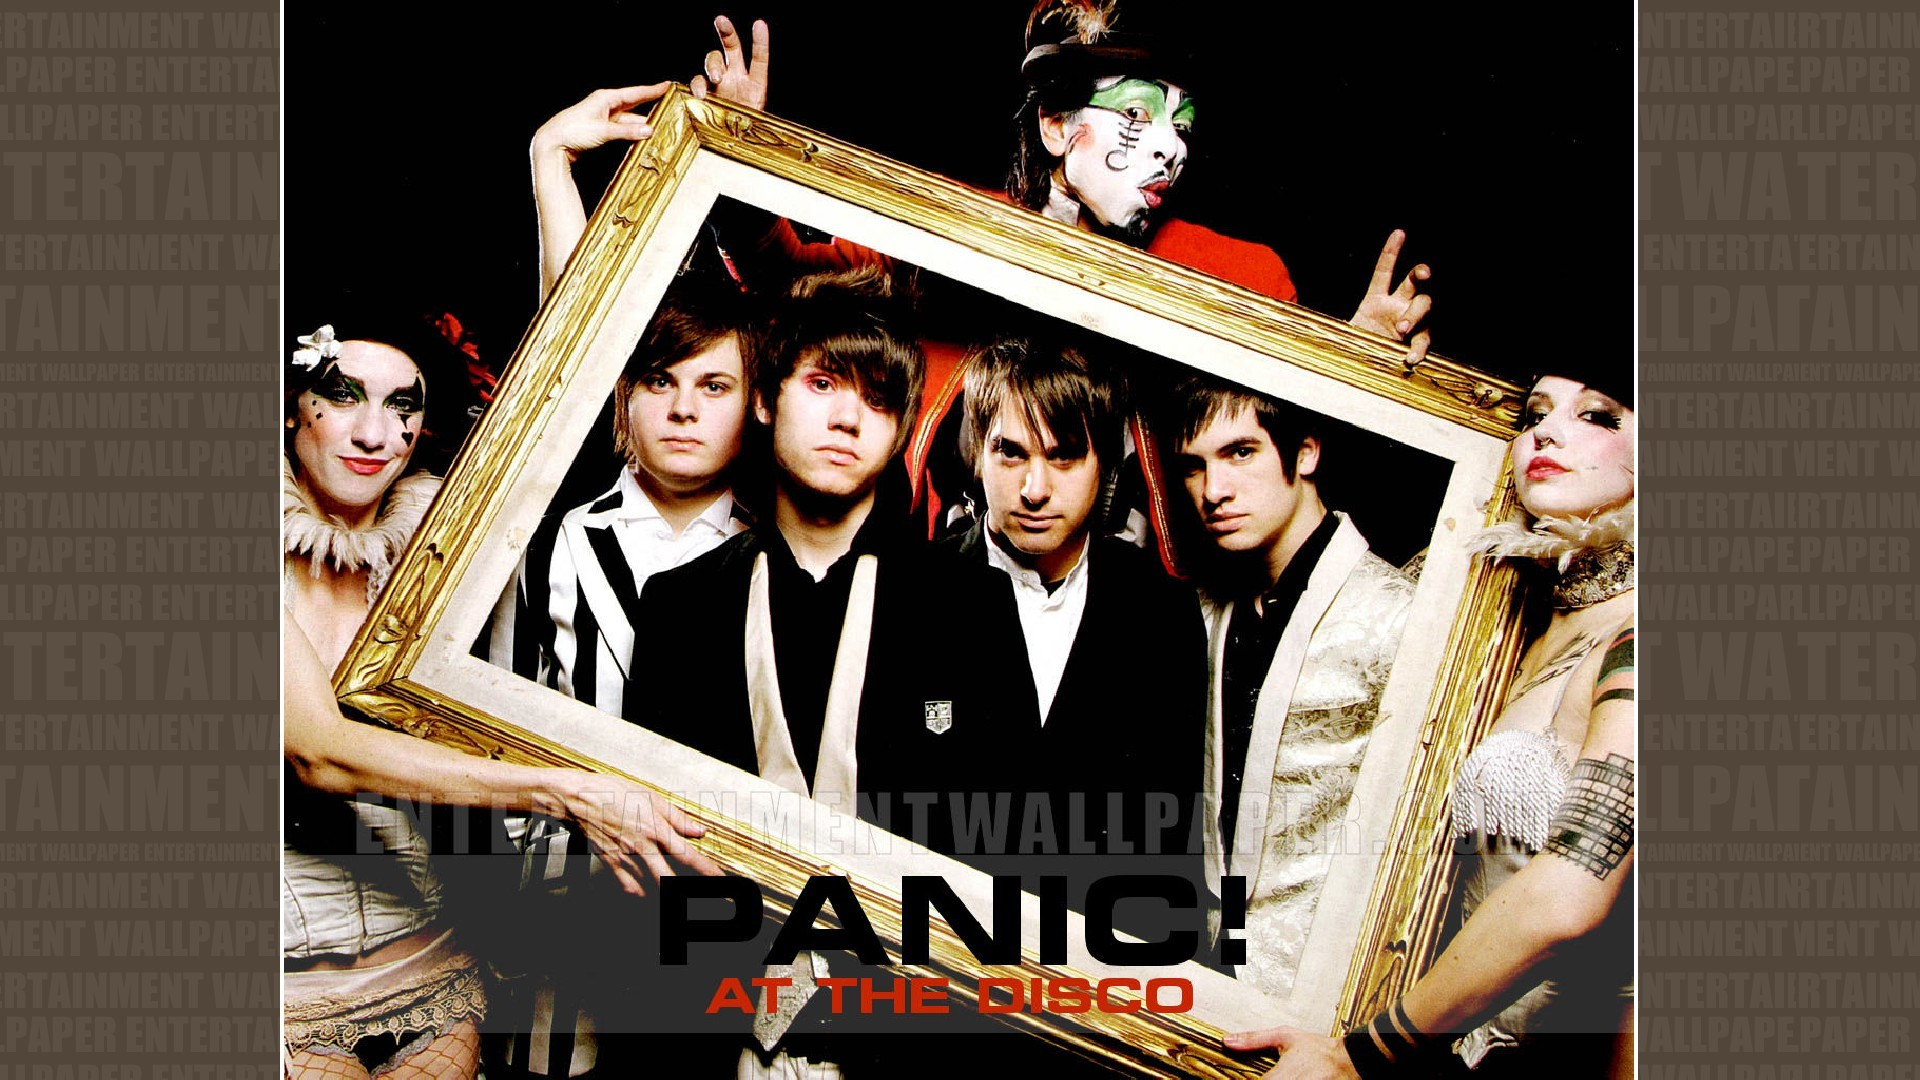 Fall Out Boy And Panic At The Disco Wallpaper Panic At The Disco Wallpapers 74 Images